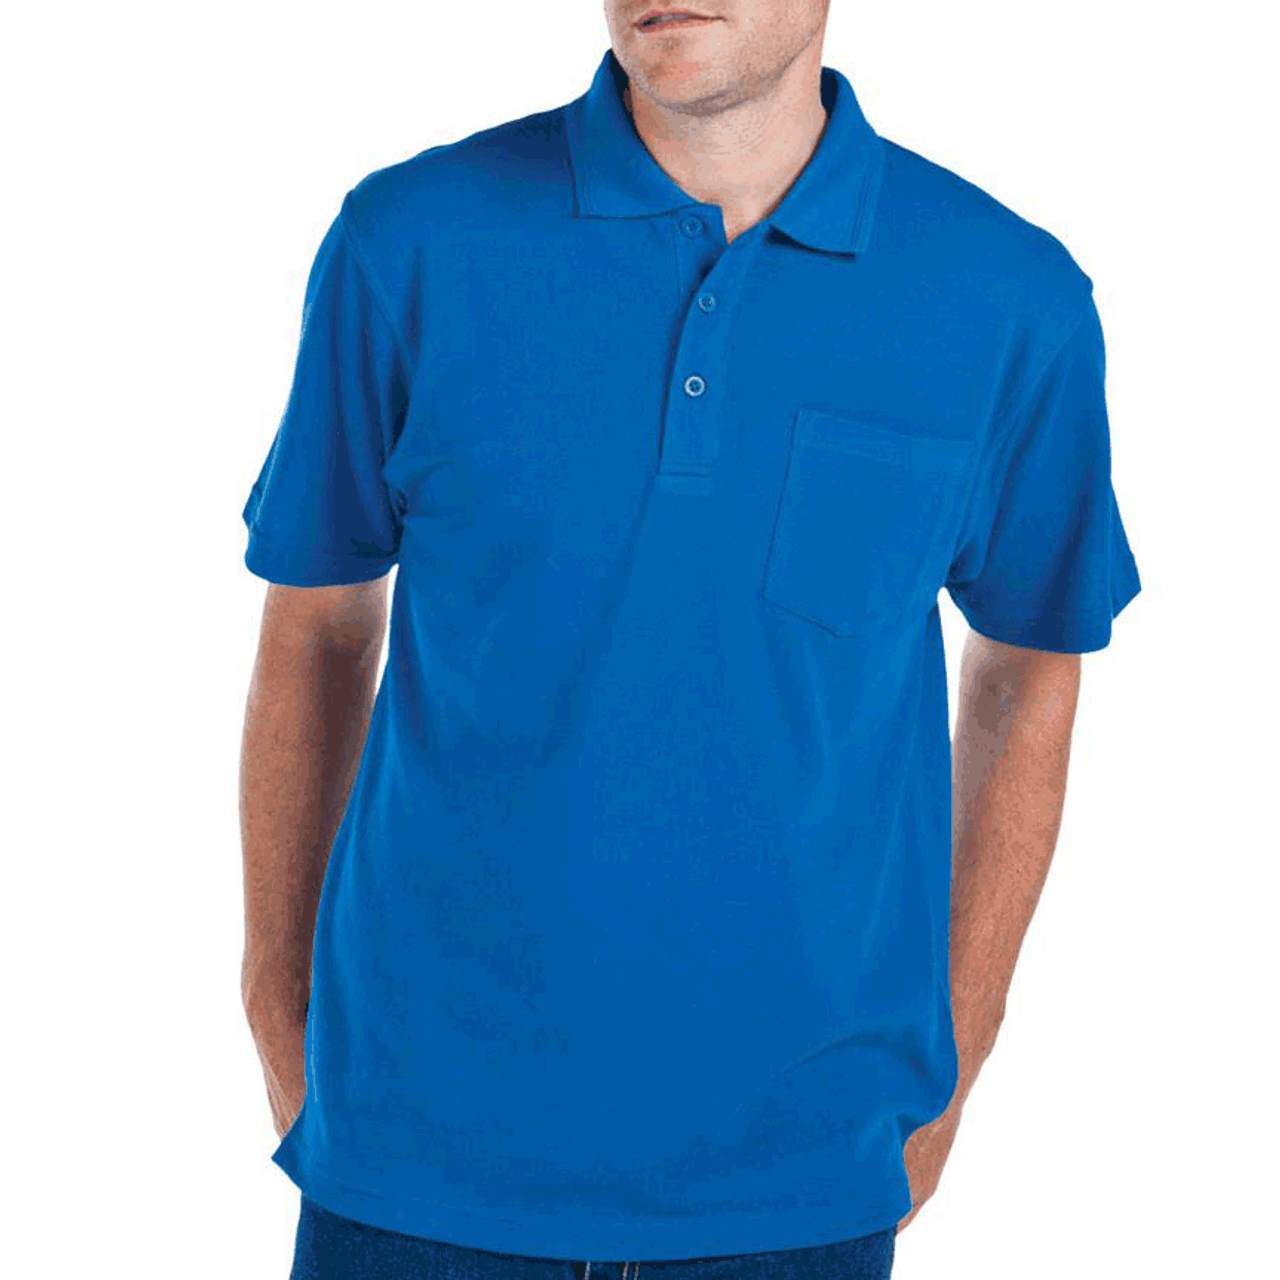 6024ba54 ... Mens Polo Shirts · Polo Shorts Sleeves · WINSTON | Short Sleeve Polo  With Chest Pocket. Click to zoom in